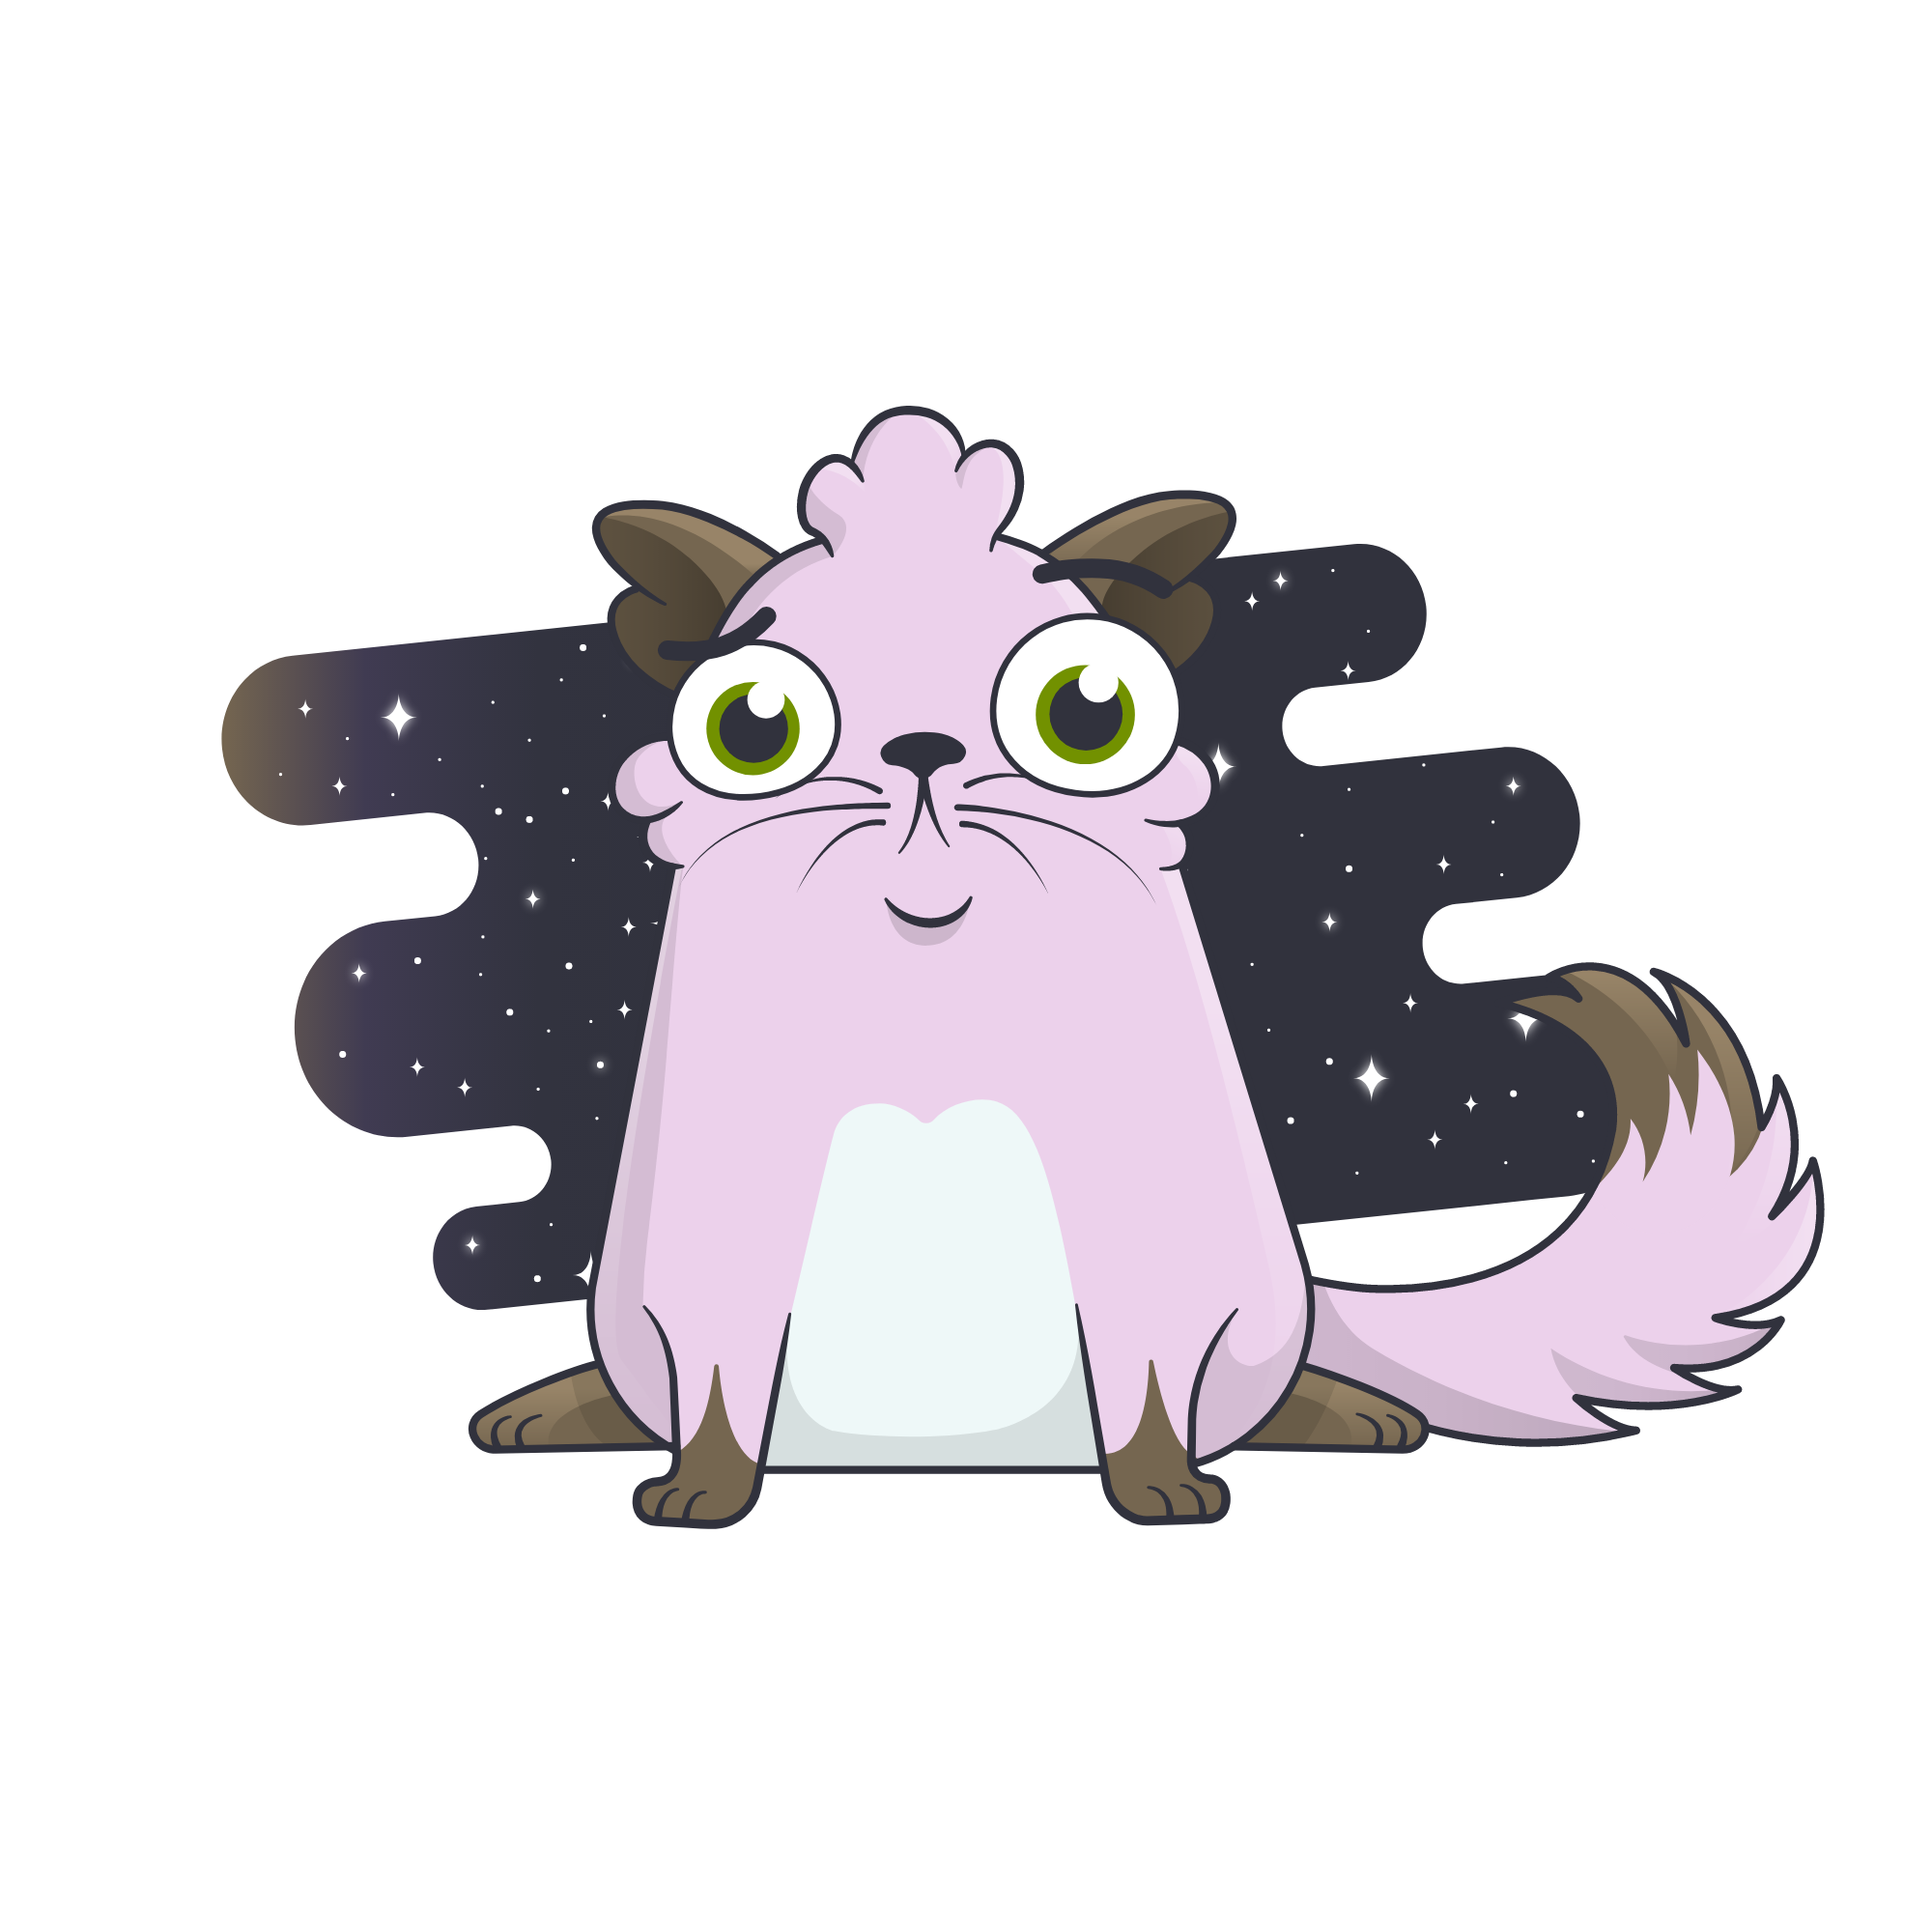 cryptokitty #1565428